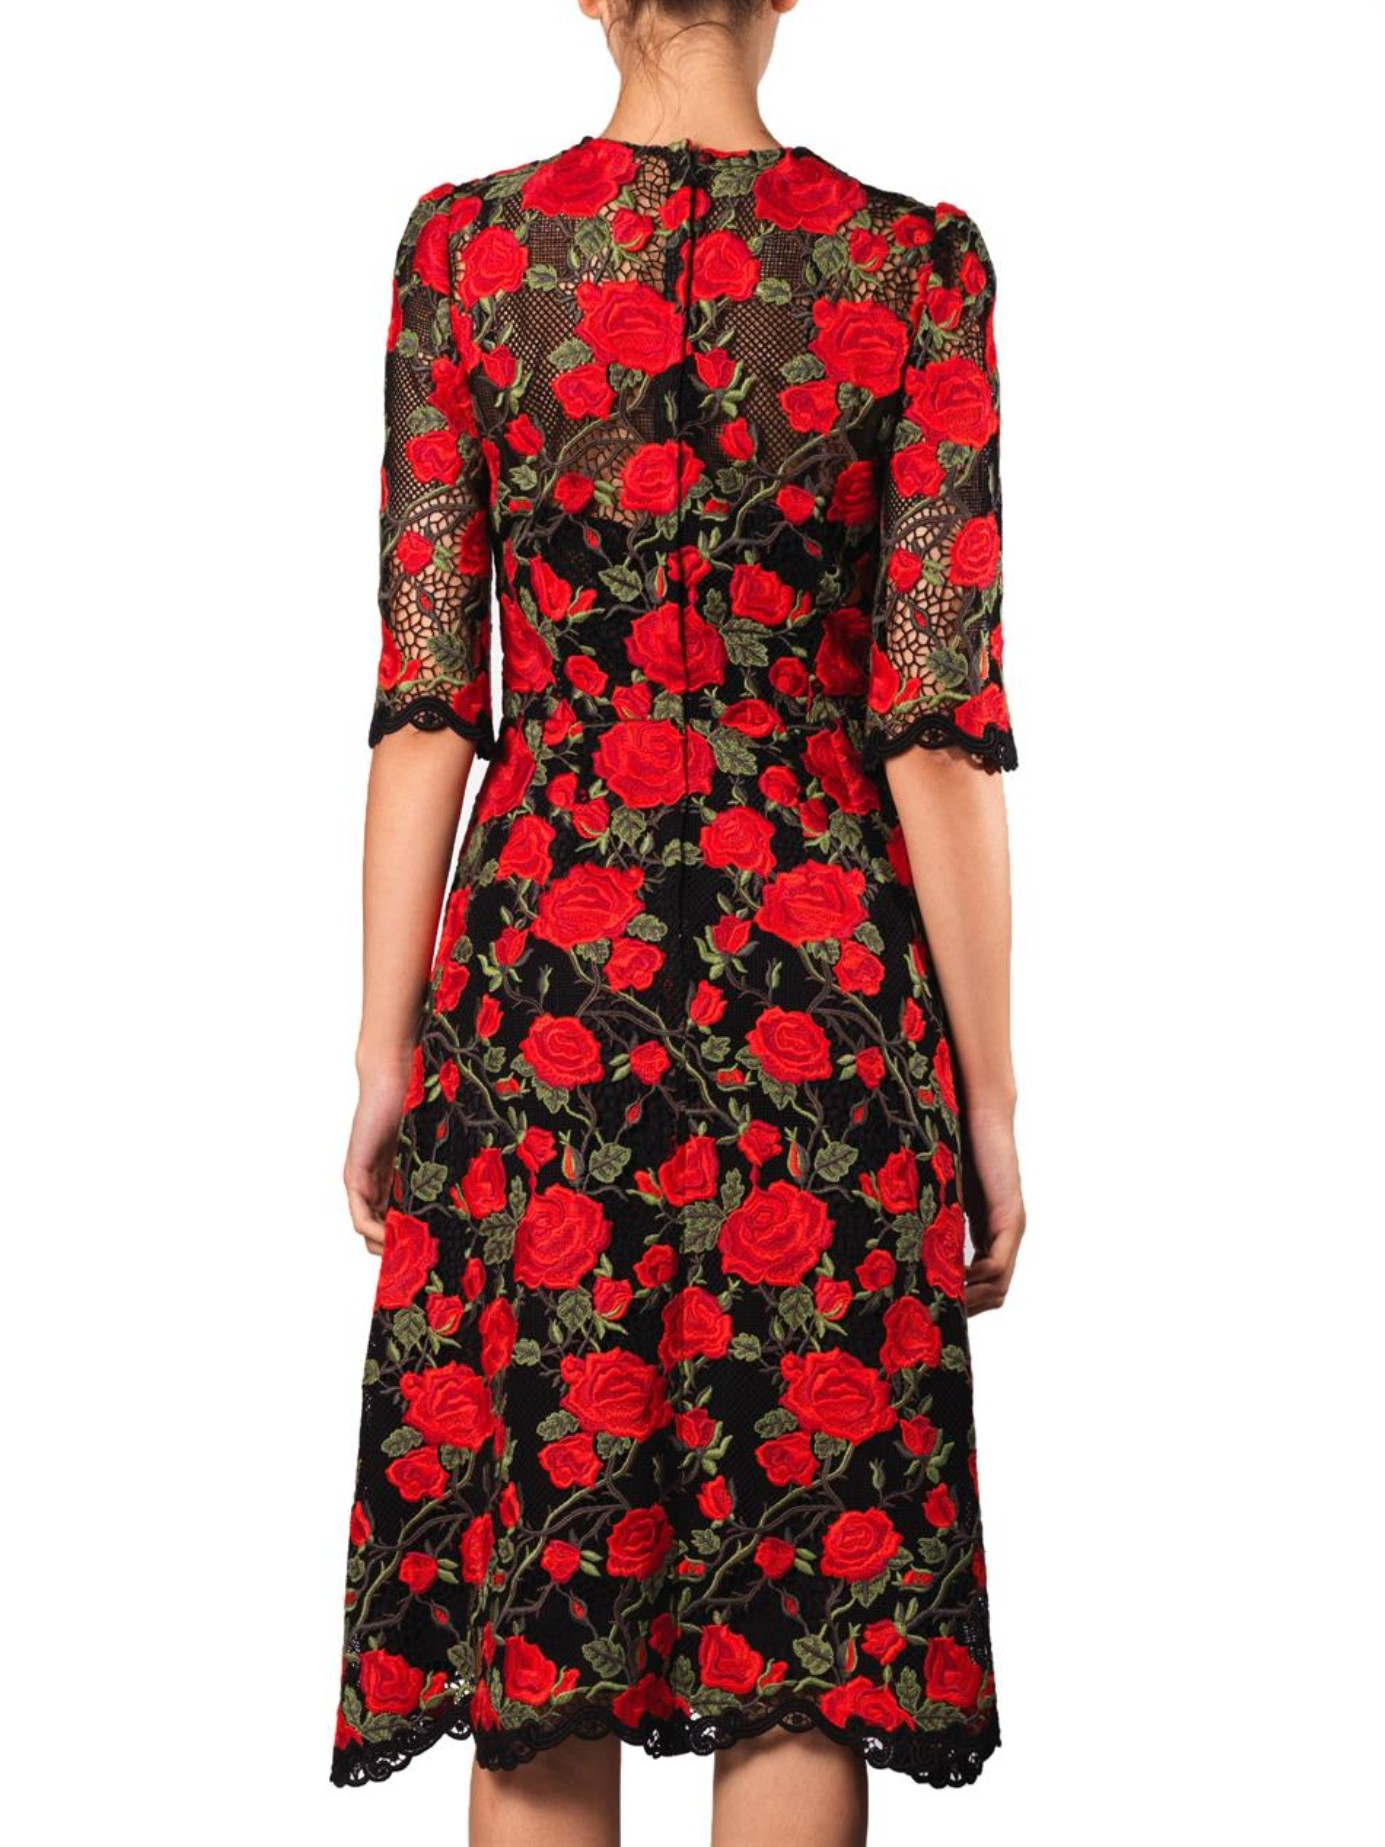 Dolce gabbana rose embroidered lace dress in red lyst